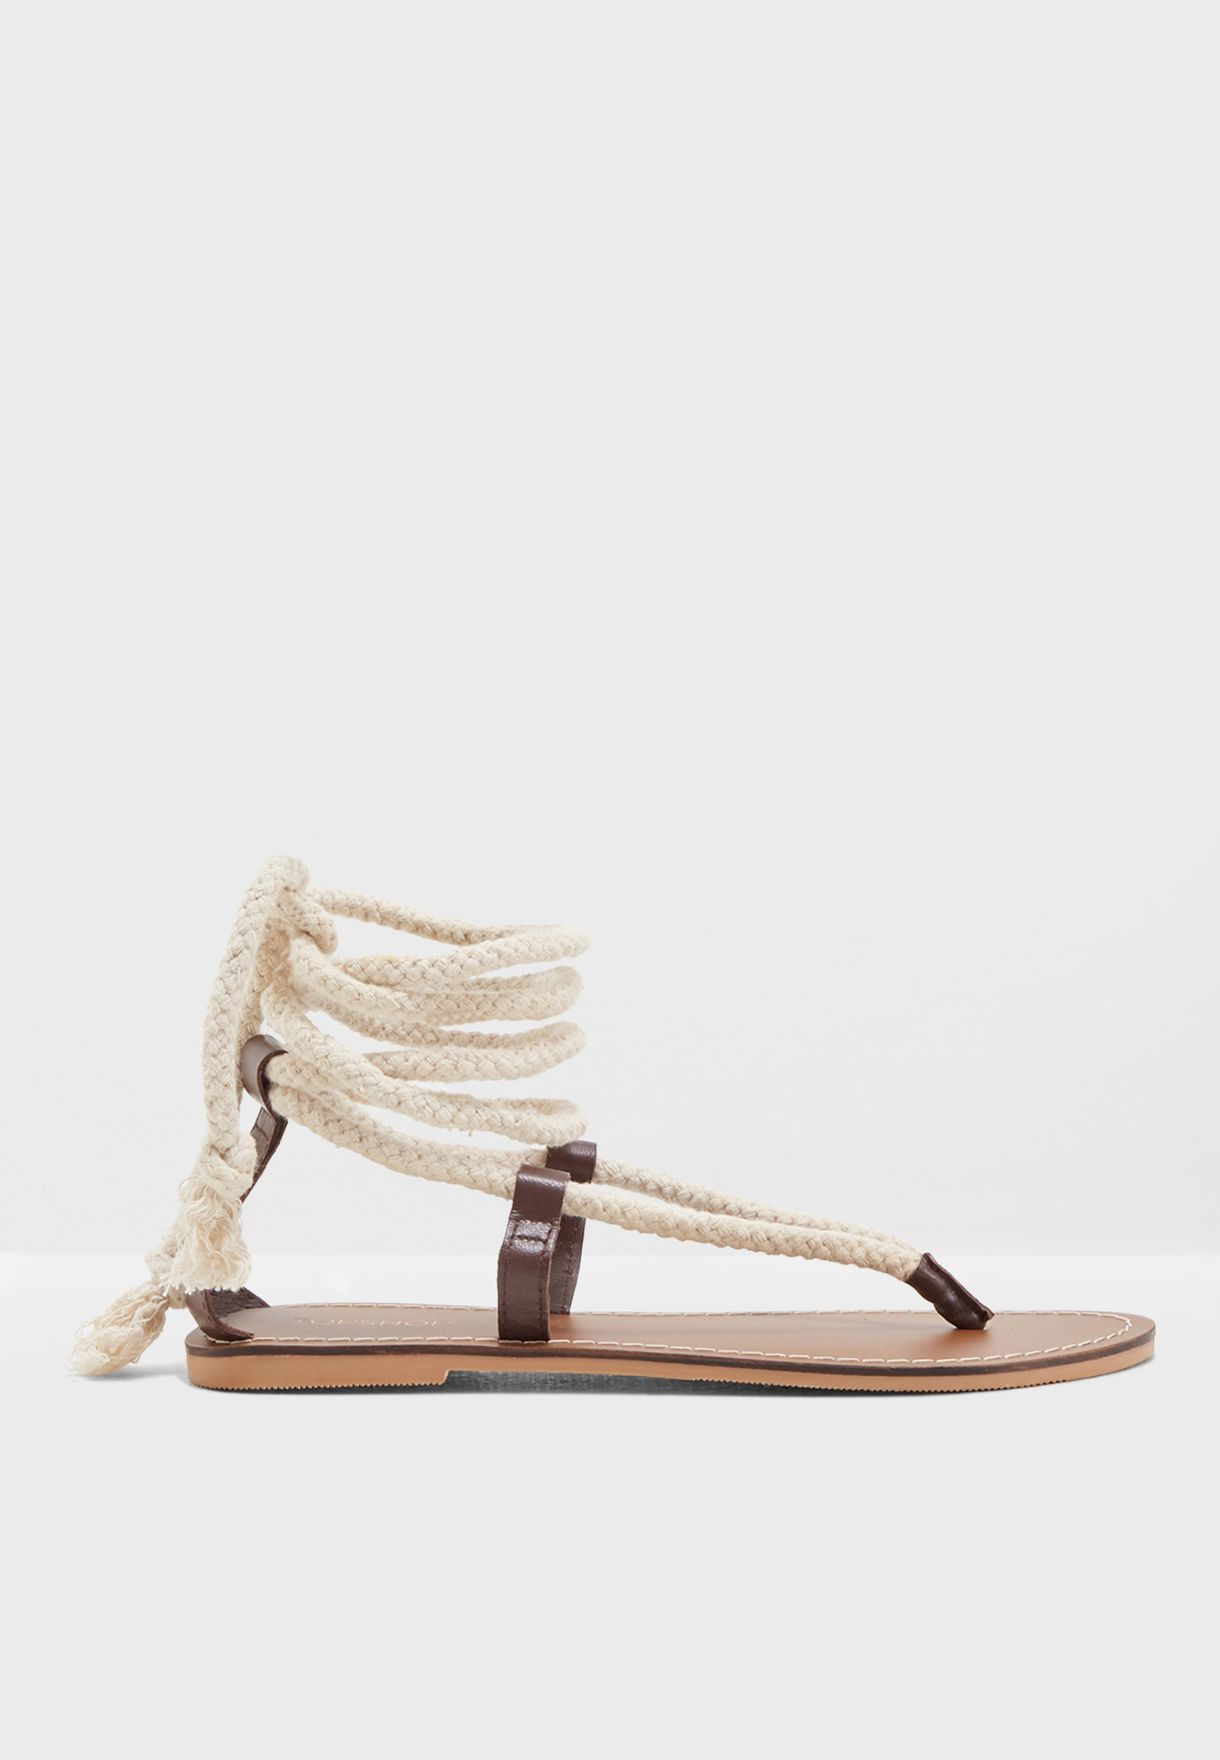 ca93c1a6292 Shop Topshop beige Rope Sandals 42H46NTAN for Women in UAE ...